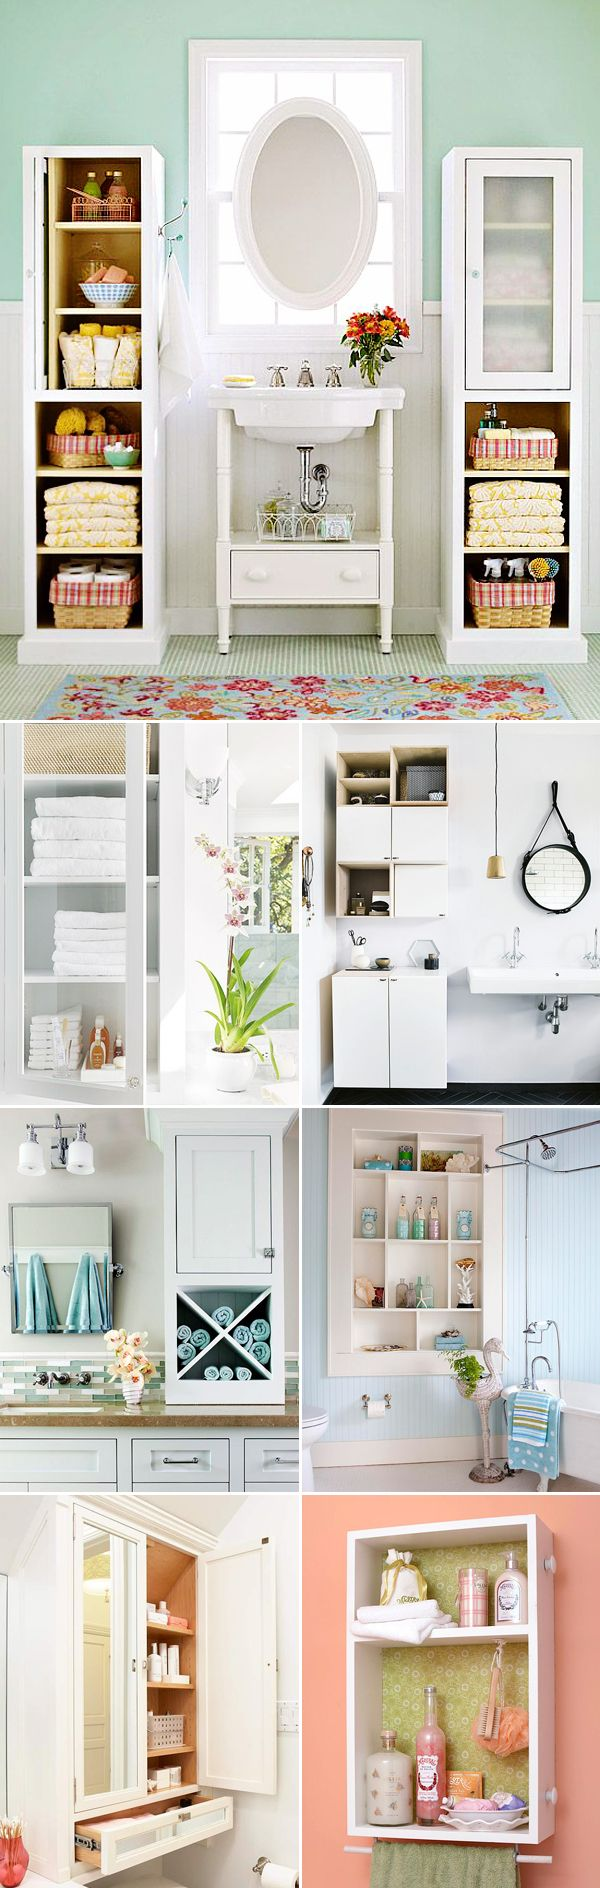 41 Clever Home Organization Ideas | Clutter, Organizing and ...